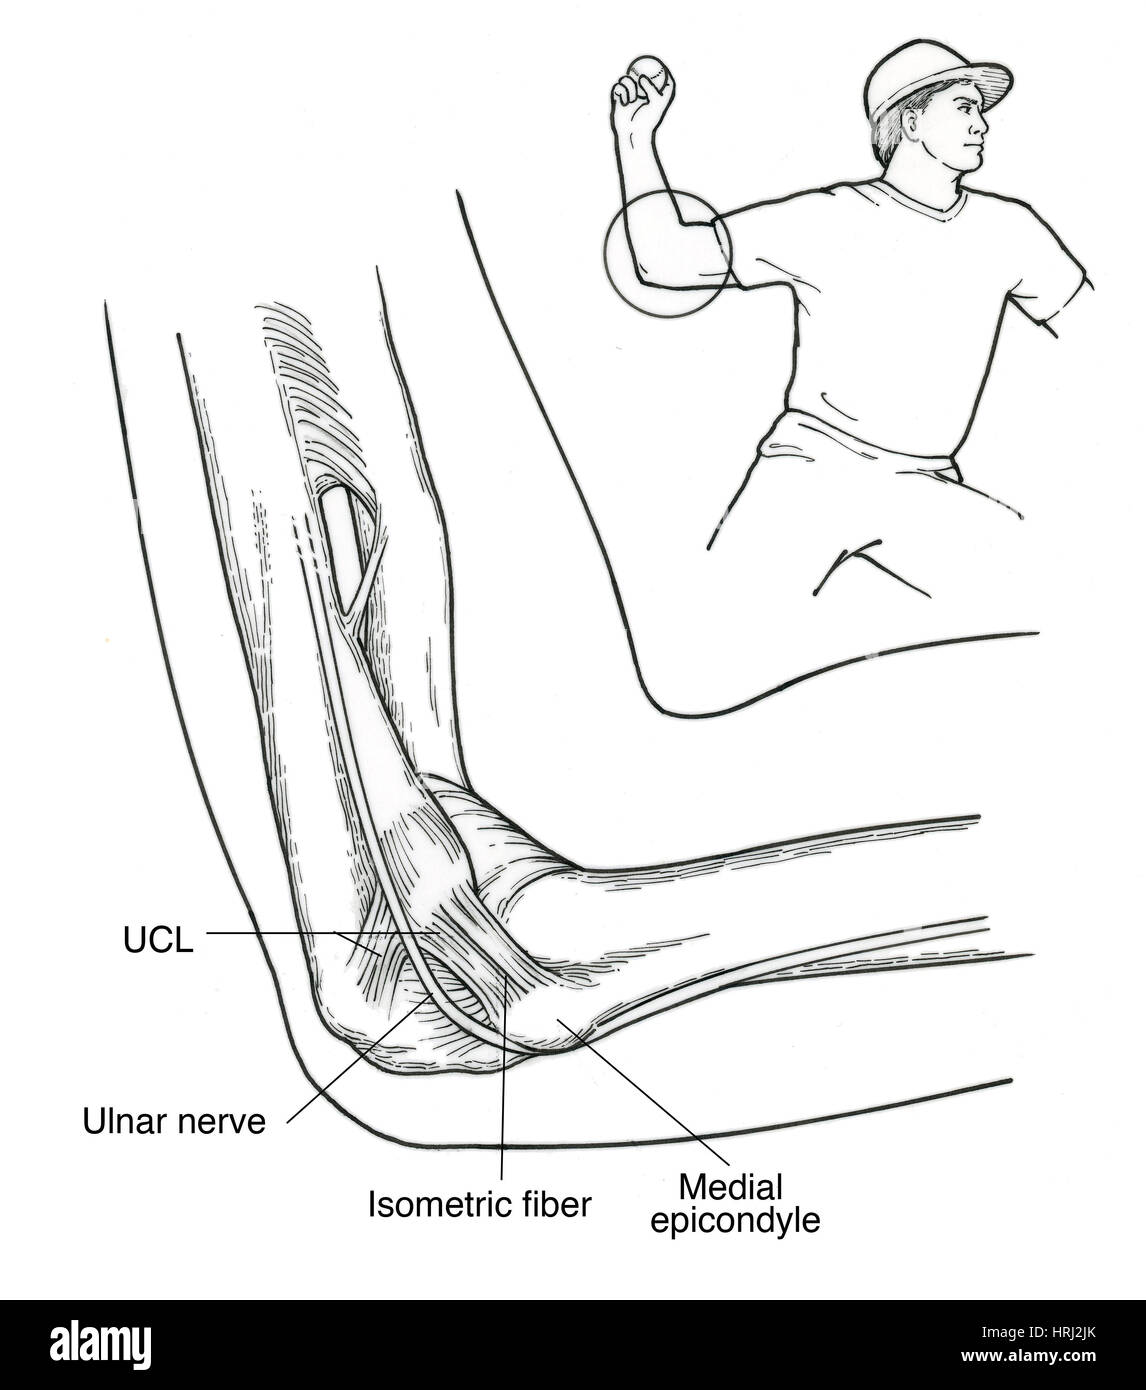 Baseball Pitching Anatomy Stock Photos & Baseball Pitching Anatomy ...